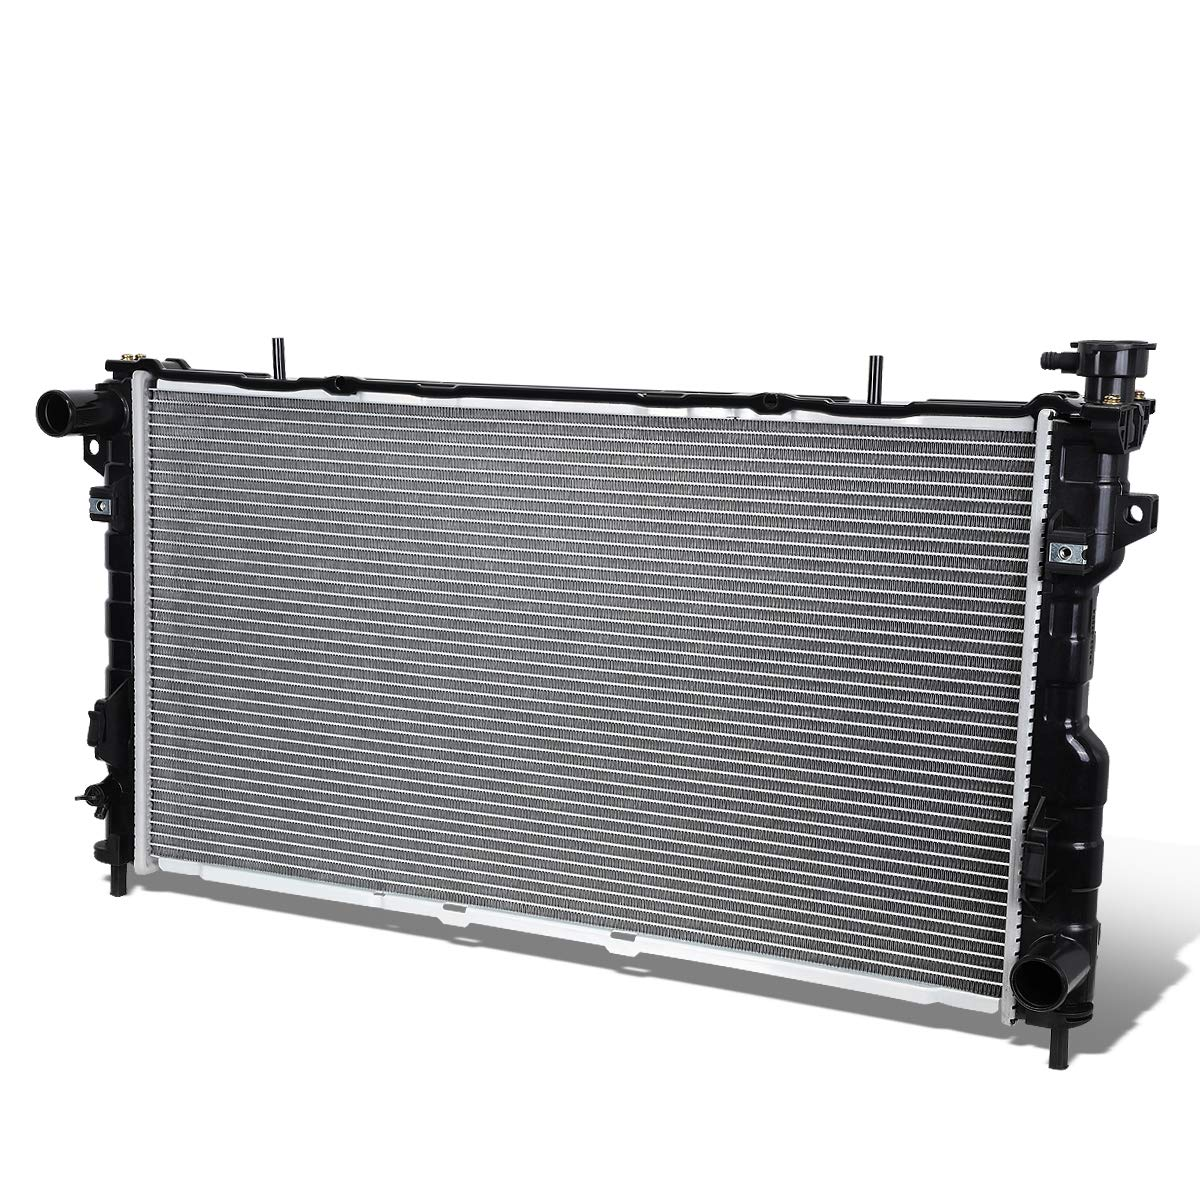 For 05-07 Chrysler Voyager/Dodge Caravan 3.3L /3.8L AT Factory Style Aluminum Core 2795 Radiator Auto Dynasty